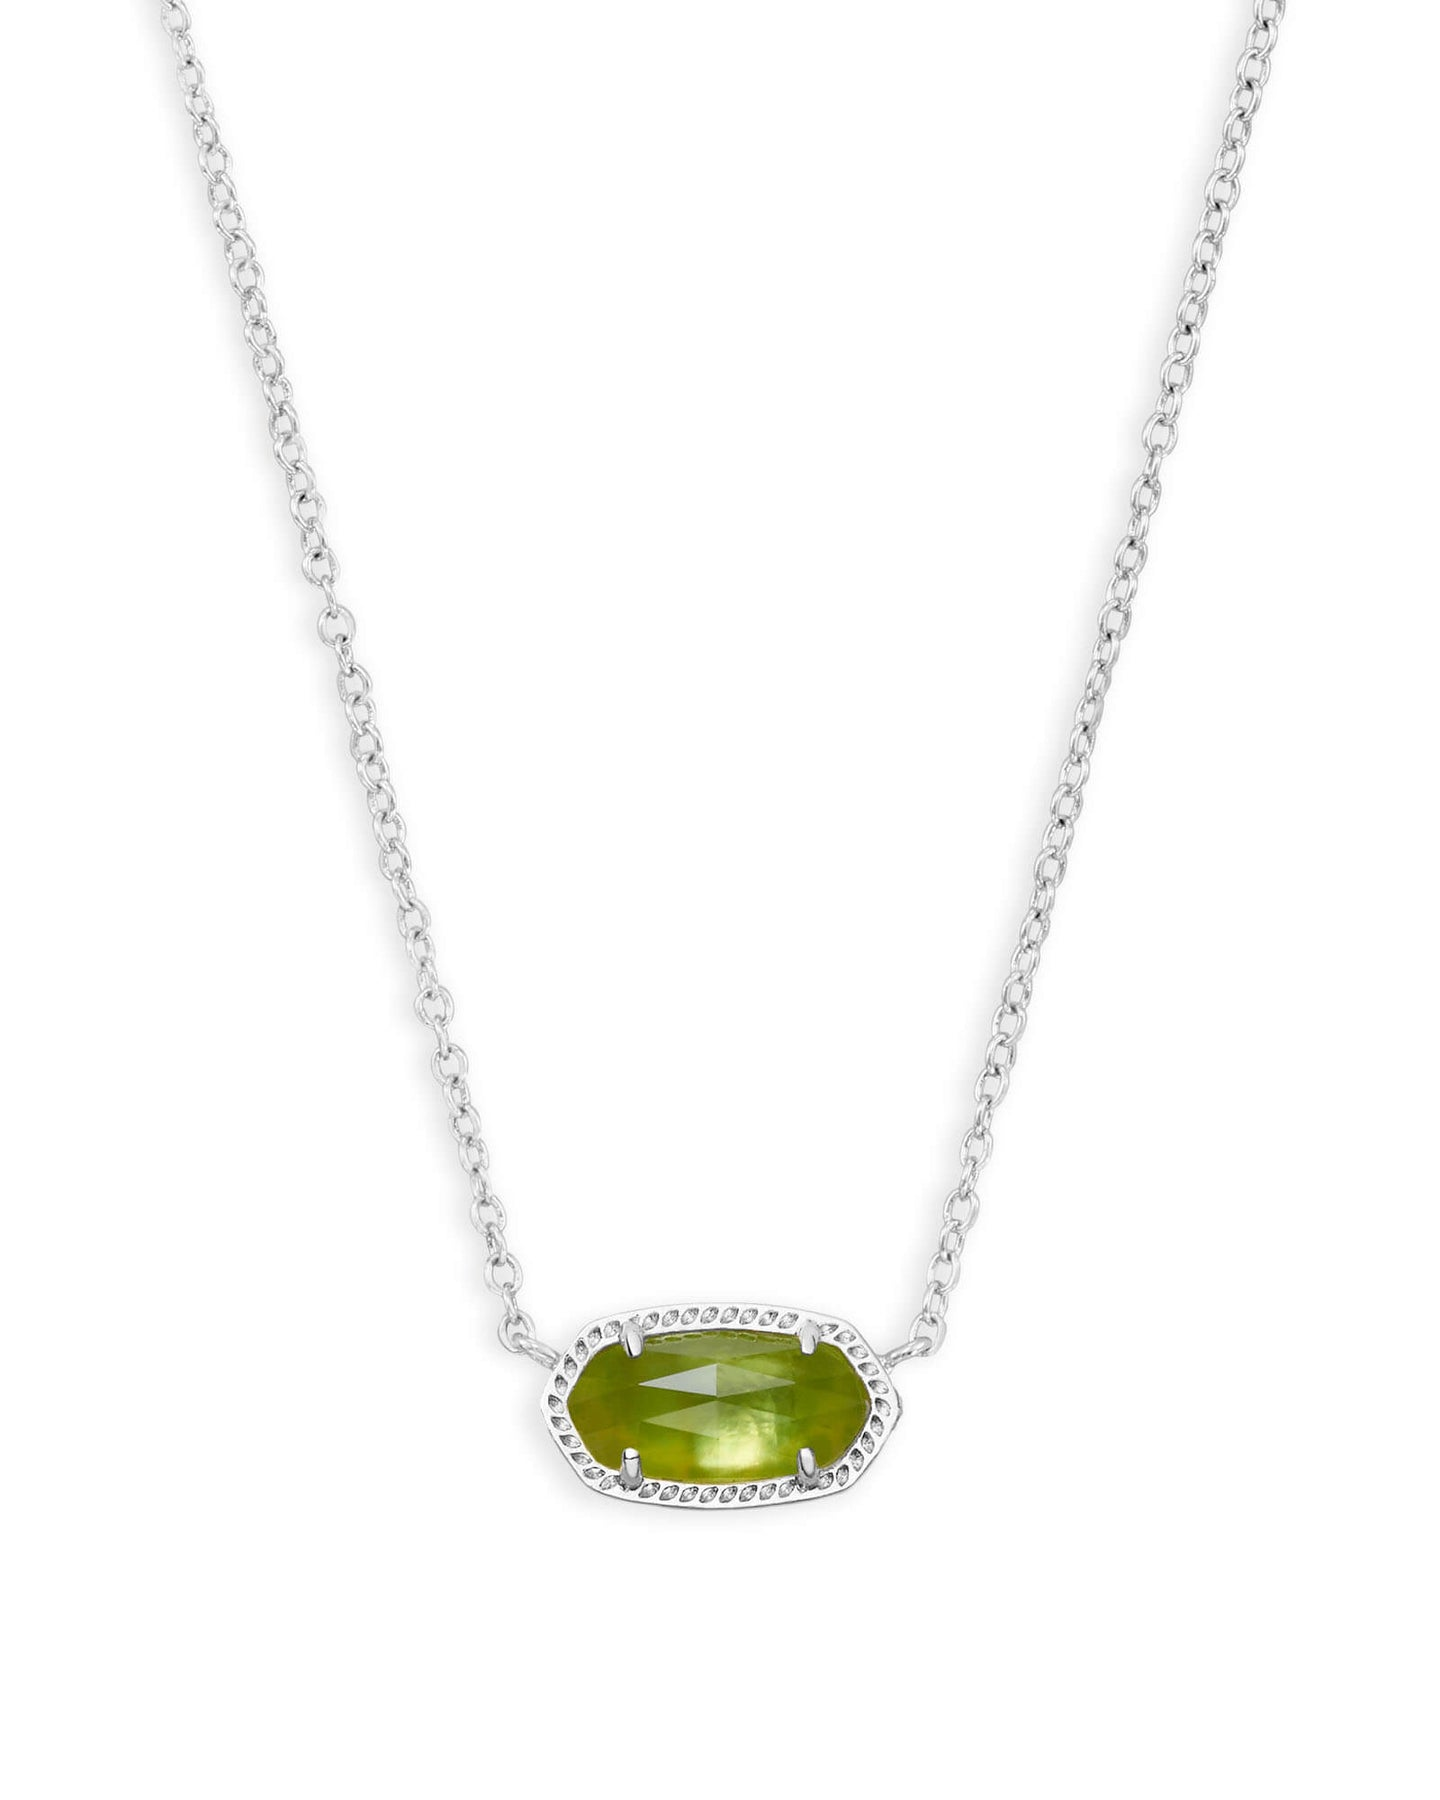 Kendra Scott Elisa Necklace - Rhodium Peridot Illusion